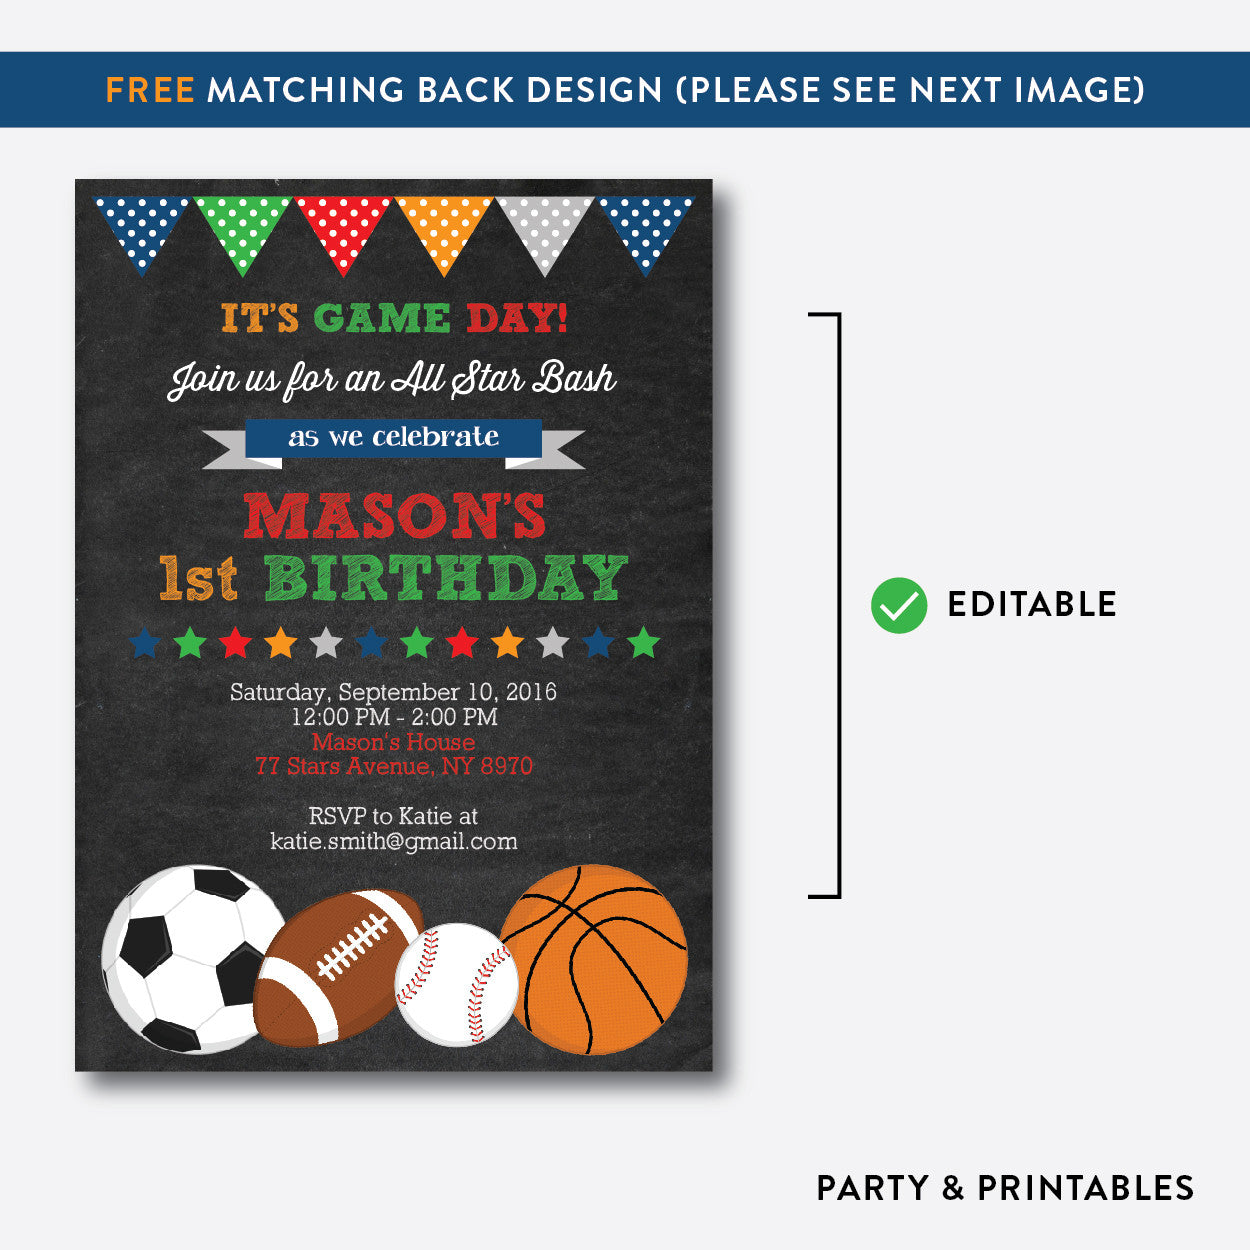 All Star Chalkboard Kids Birthday Invitation / Editable / Instant Download (CKB.81), invitation - Party and Printables